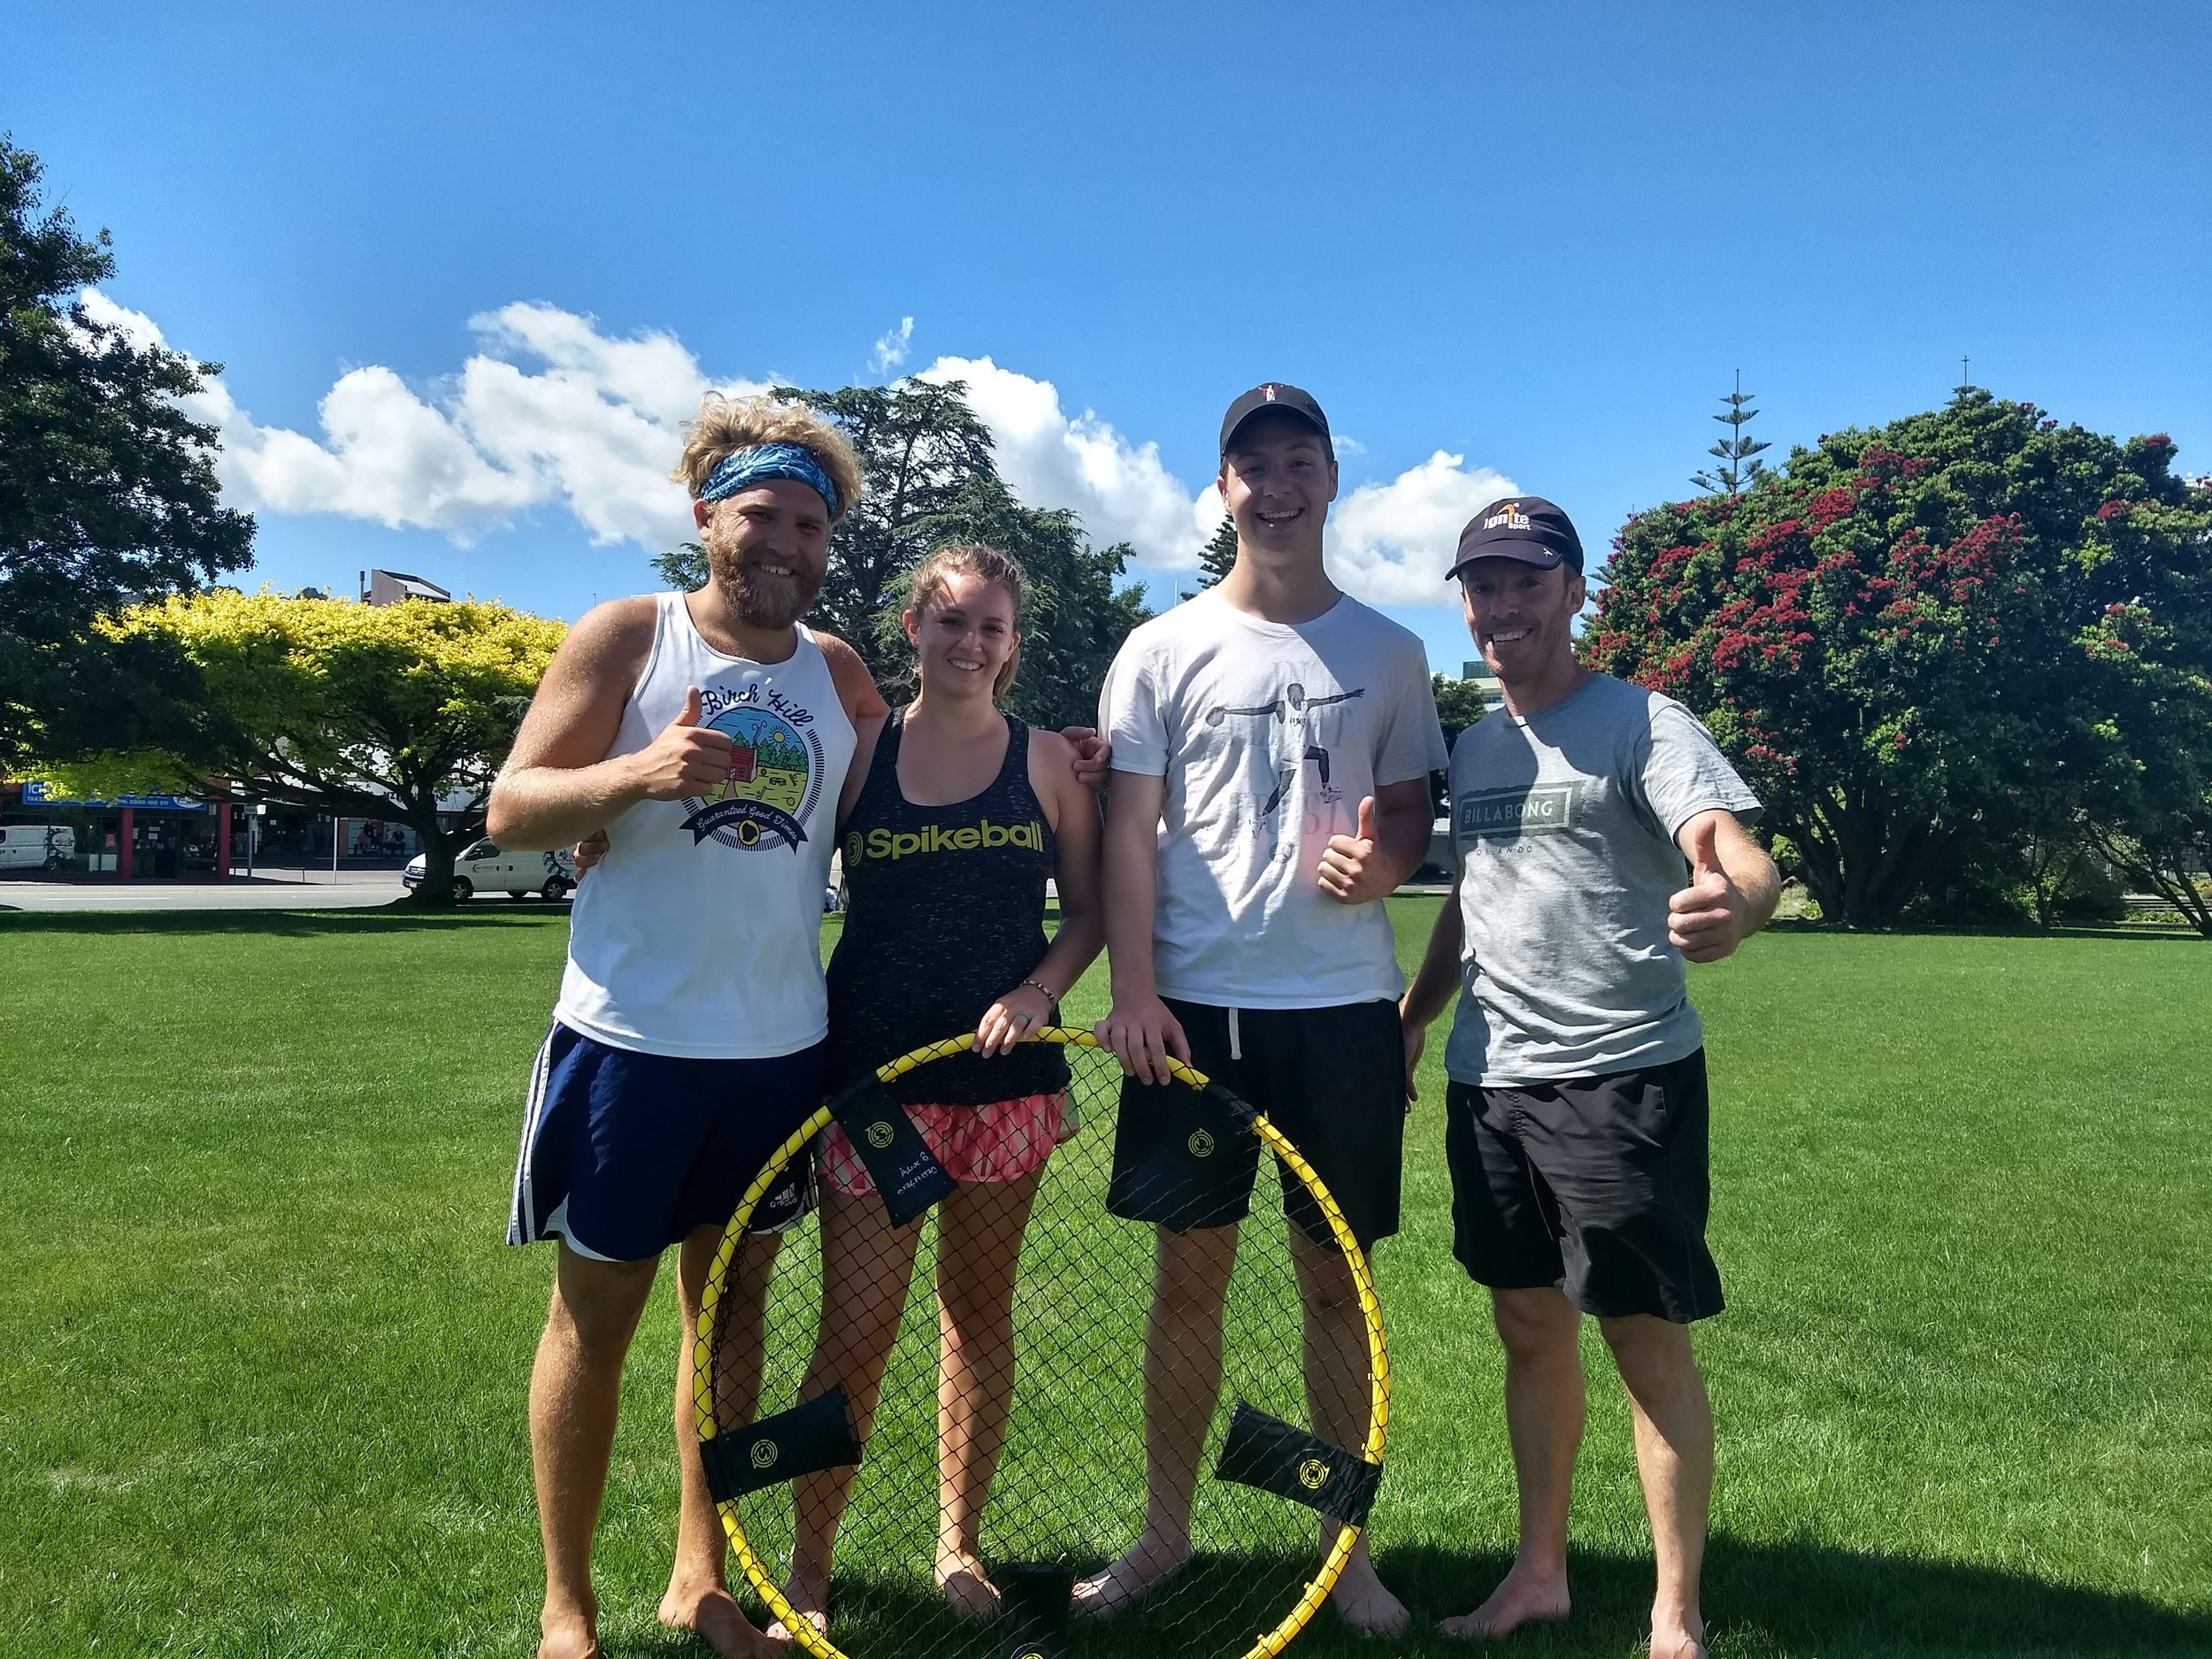 Friends we met to play spikeball with! It was super fun, and they were very cool!